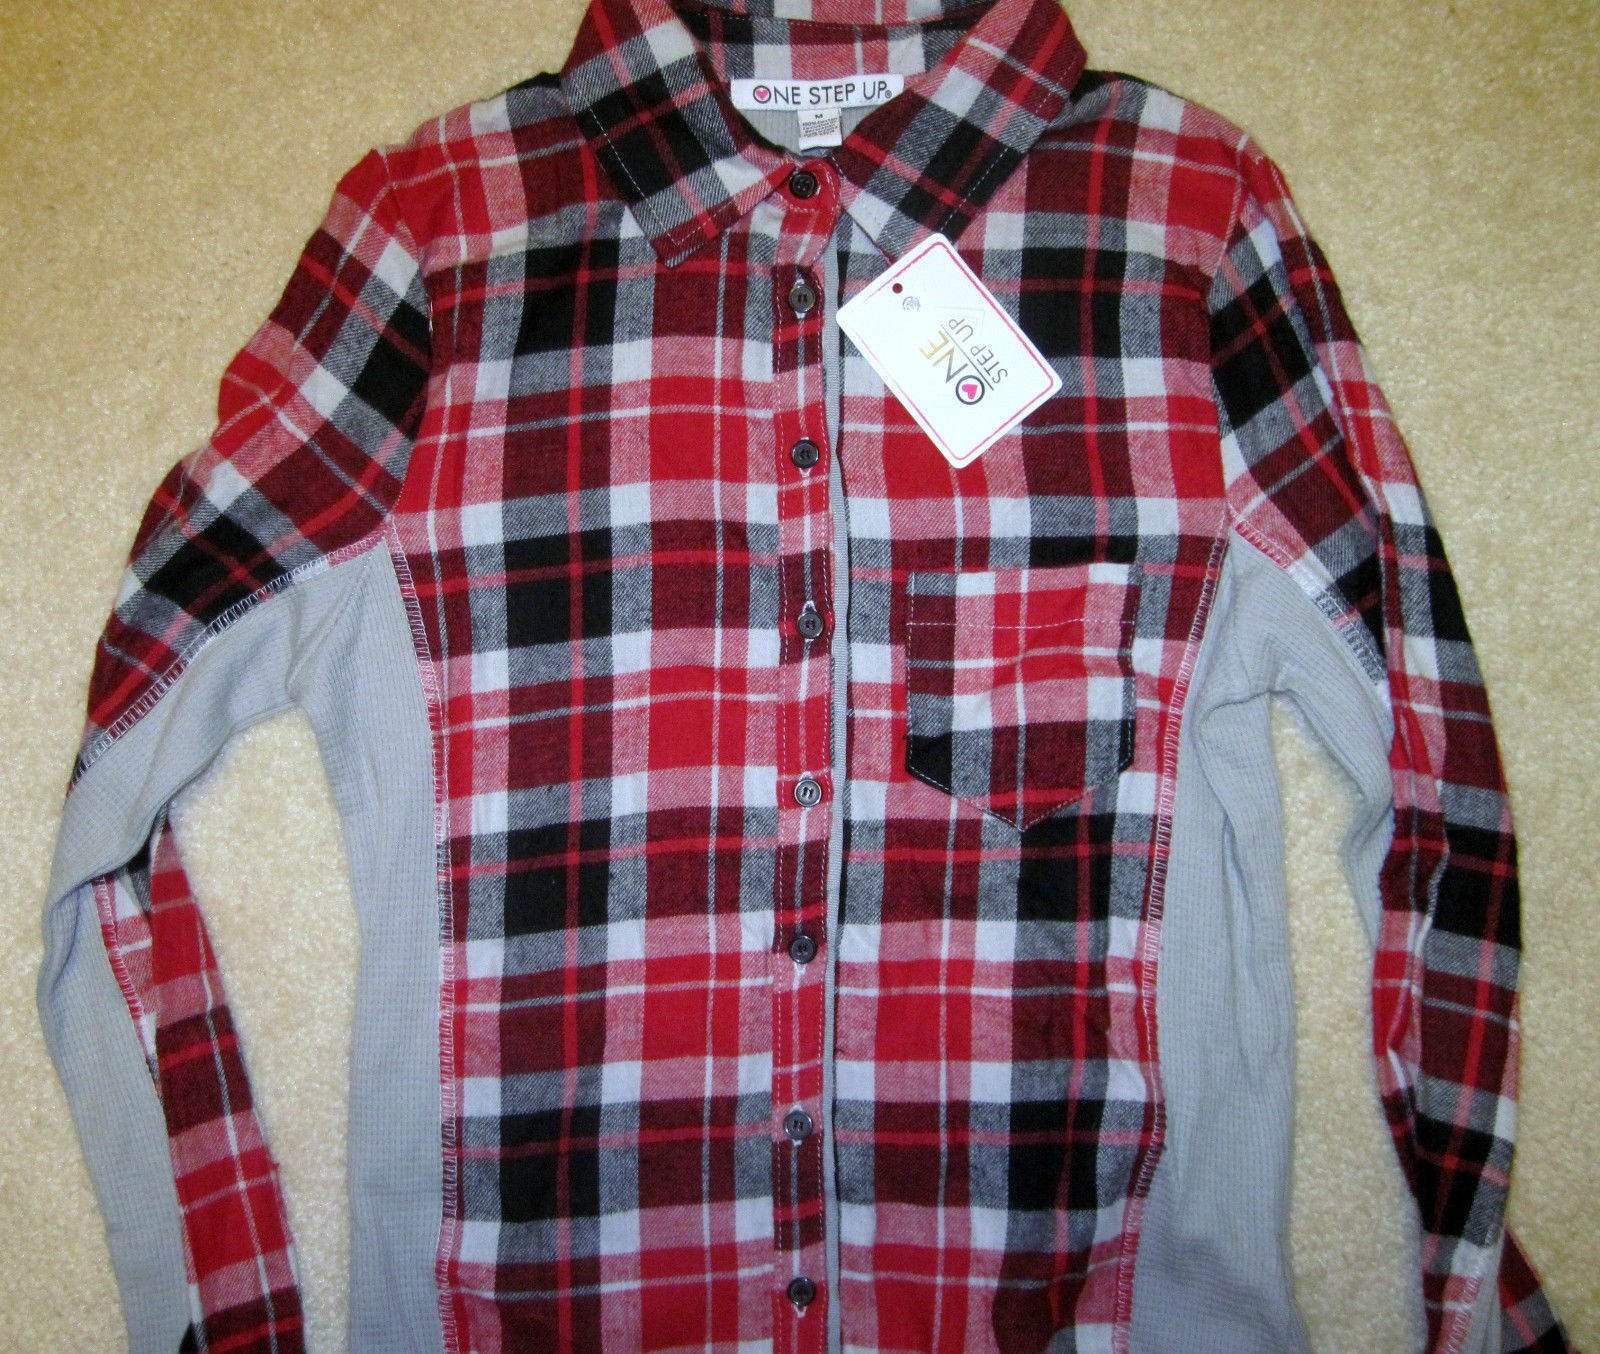 NWT ONE STEP UP Flannel Shirt Long Sleeve Plaid Red or Blue Junior Sizes image 7